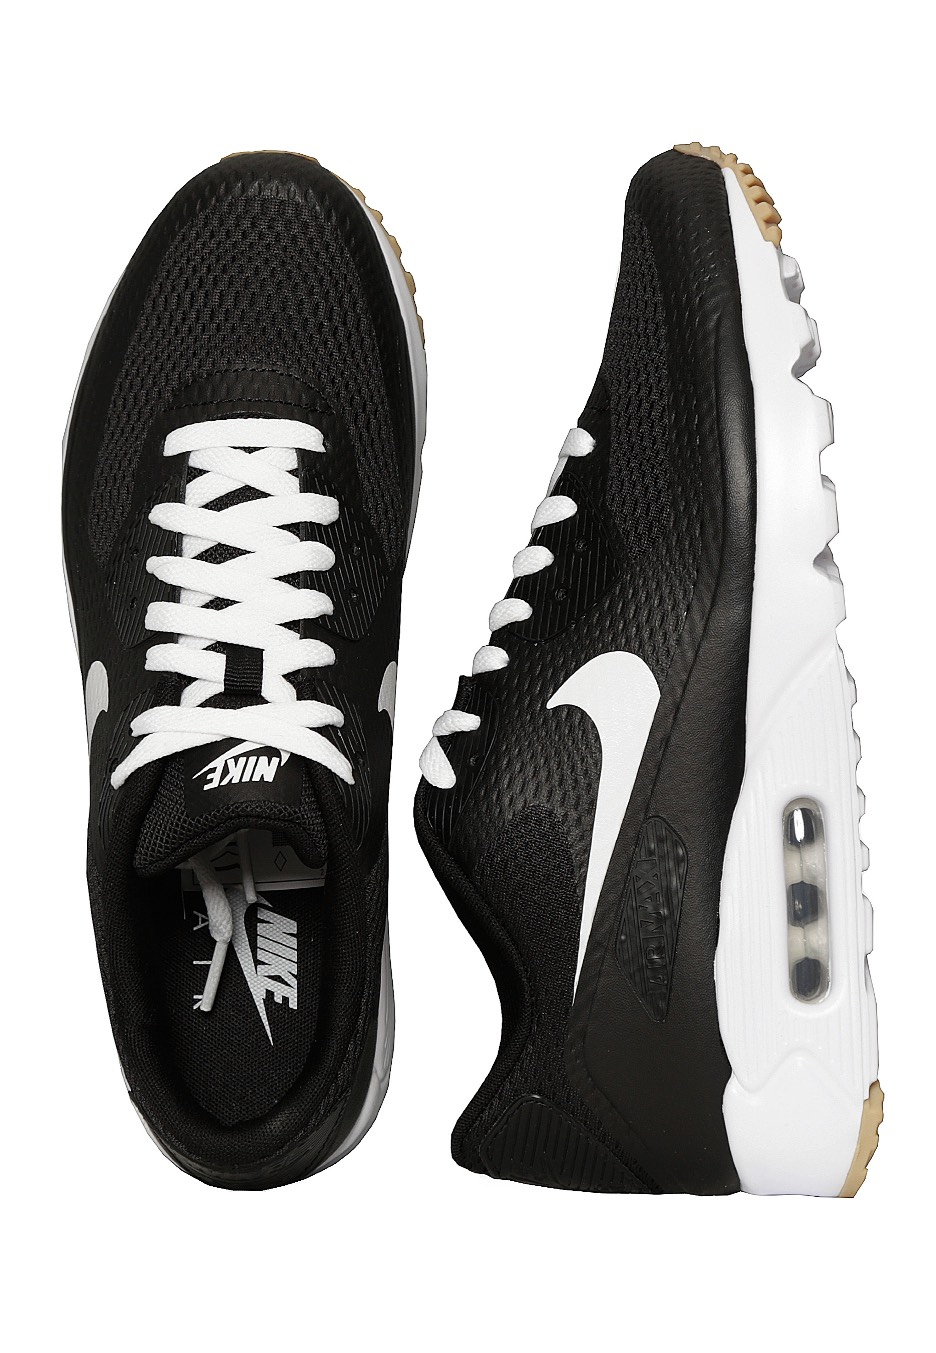 d91f61d60a Nike - Air Max 90 Ultra Essential Black/White/Black - Shoes - Impericon.com  US